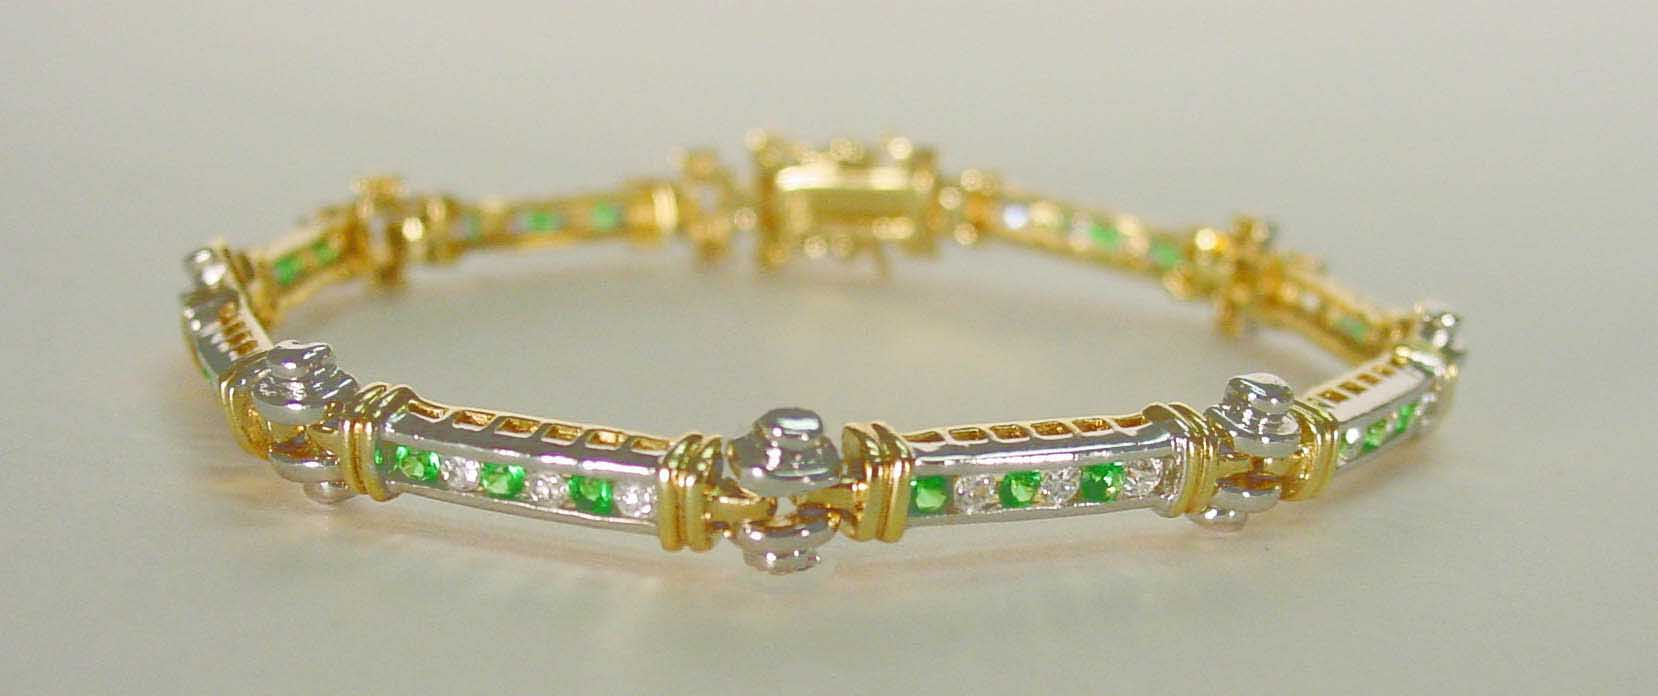 Emerald CZ & Clear CZ bracelet in channel setting